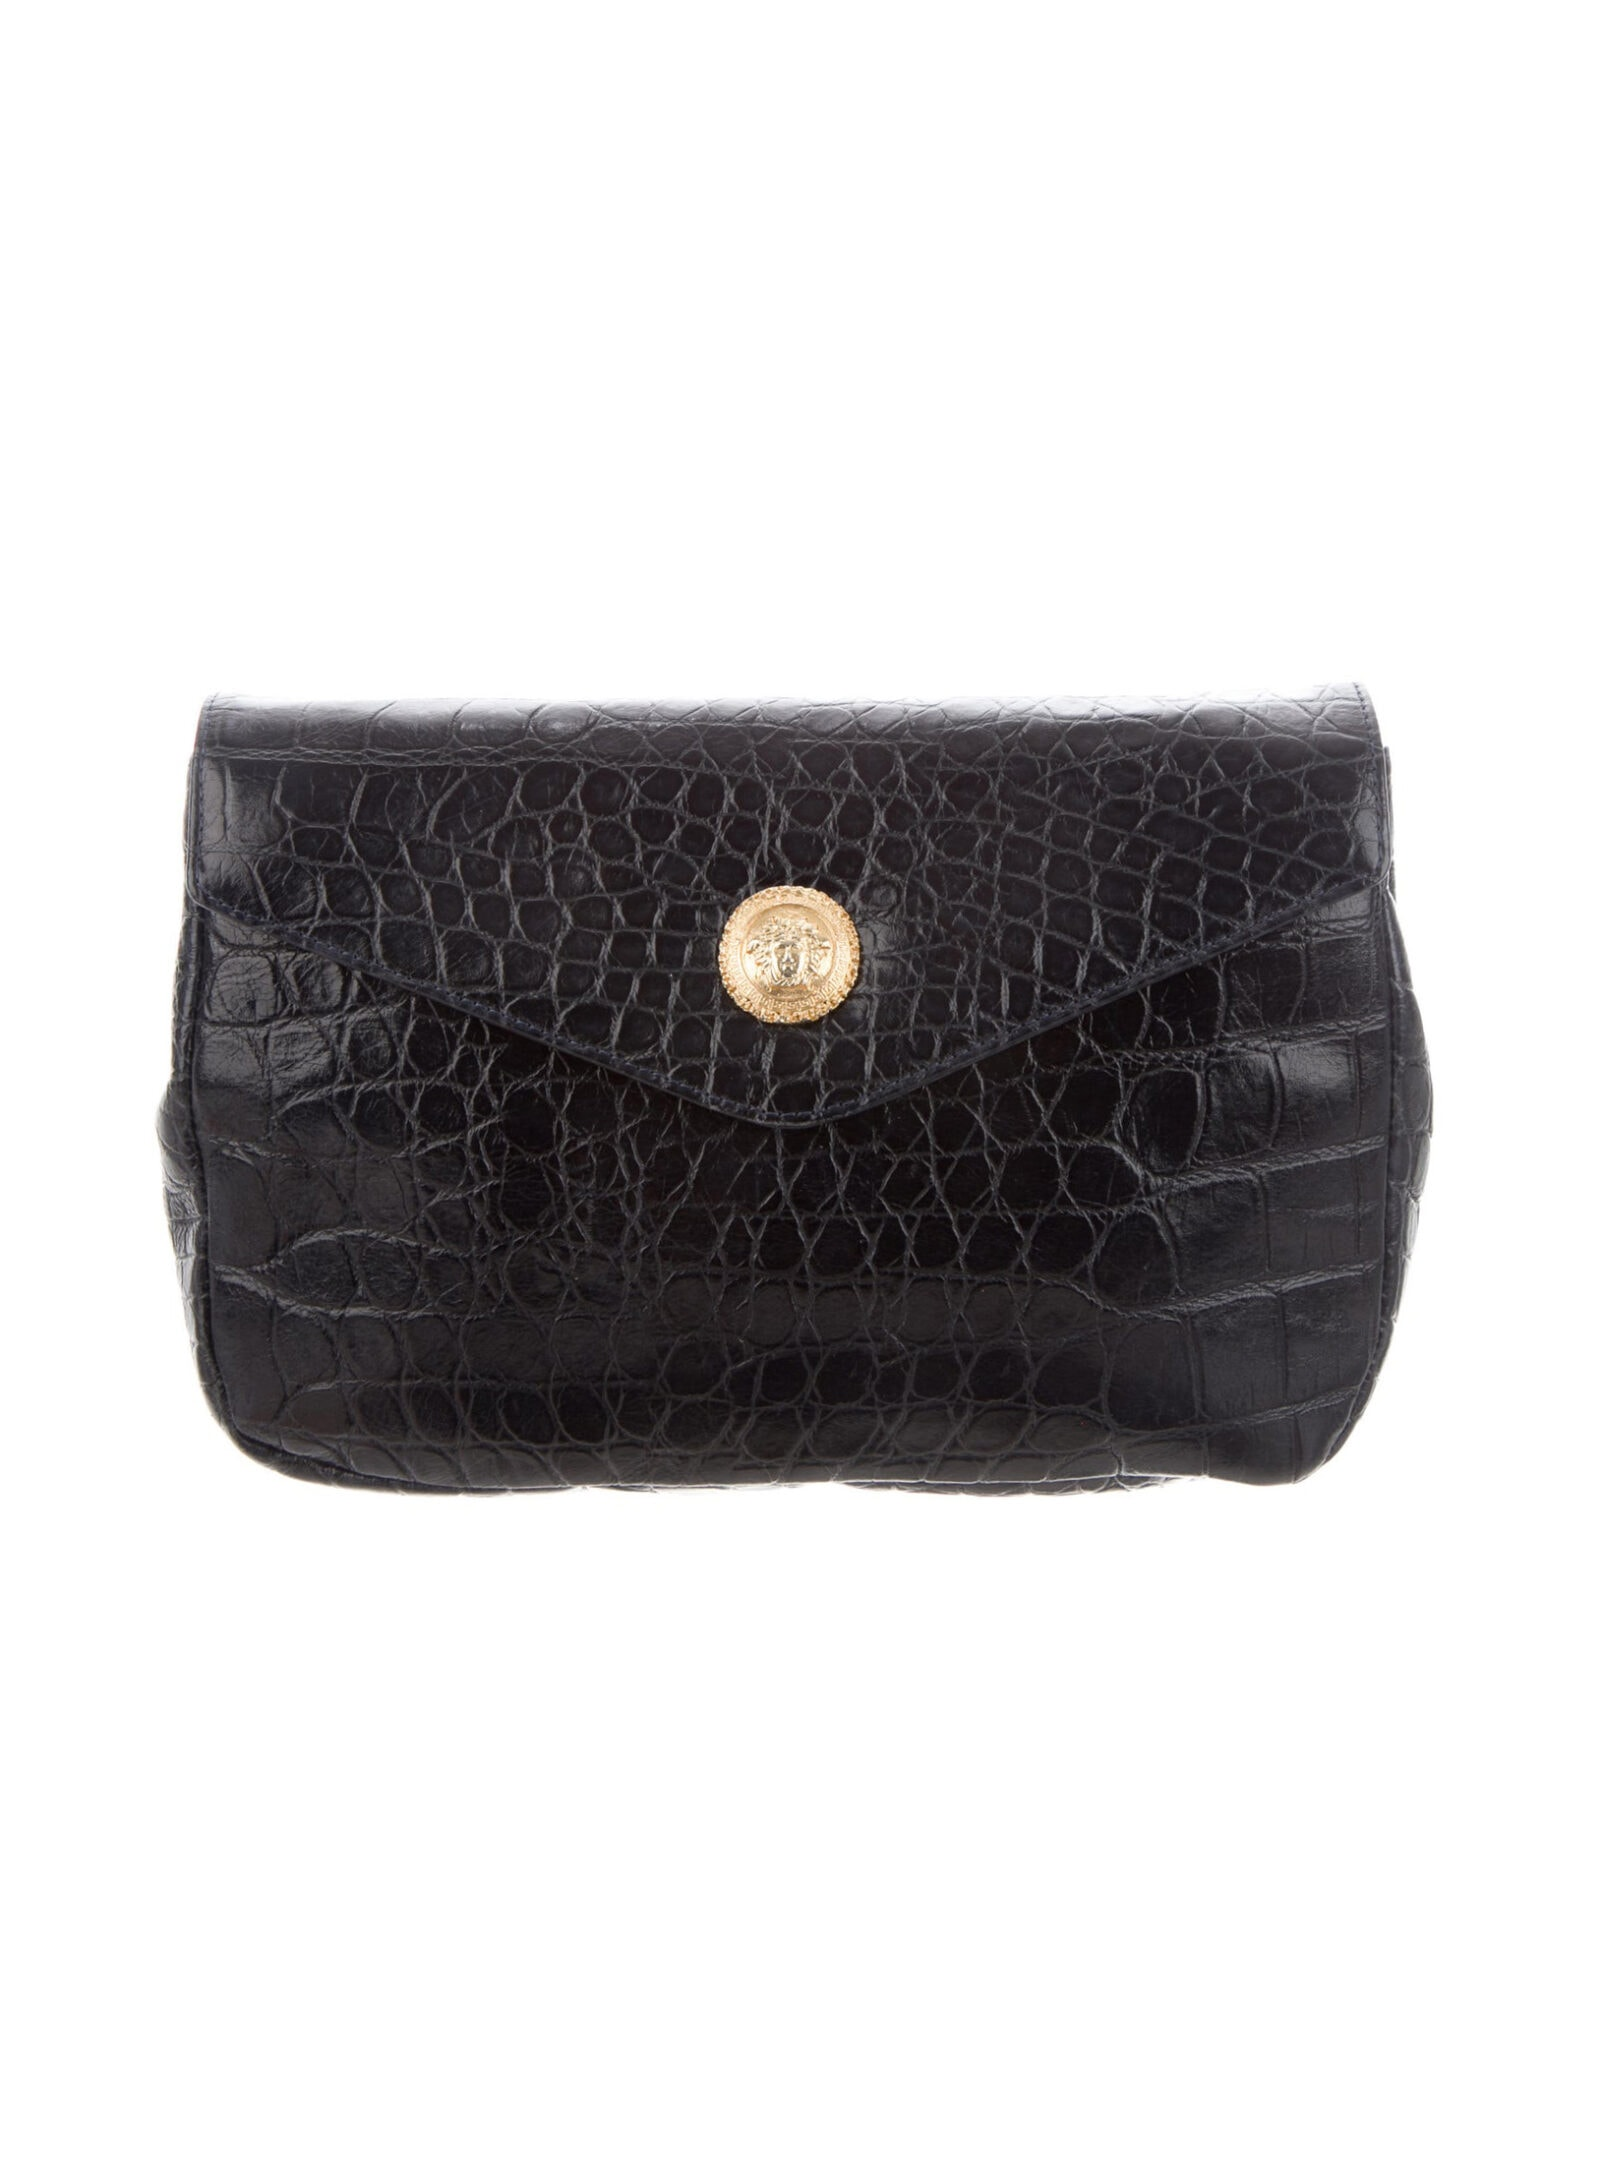 GIANNI VERSACE Embossed Leather Clutch